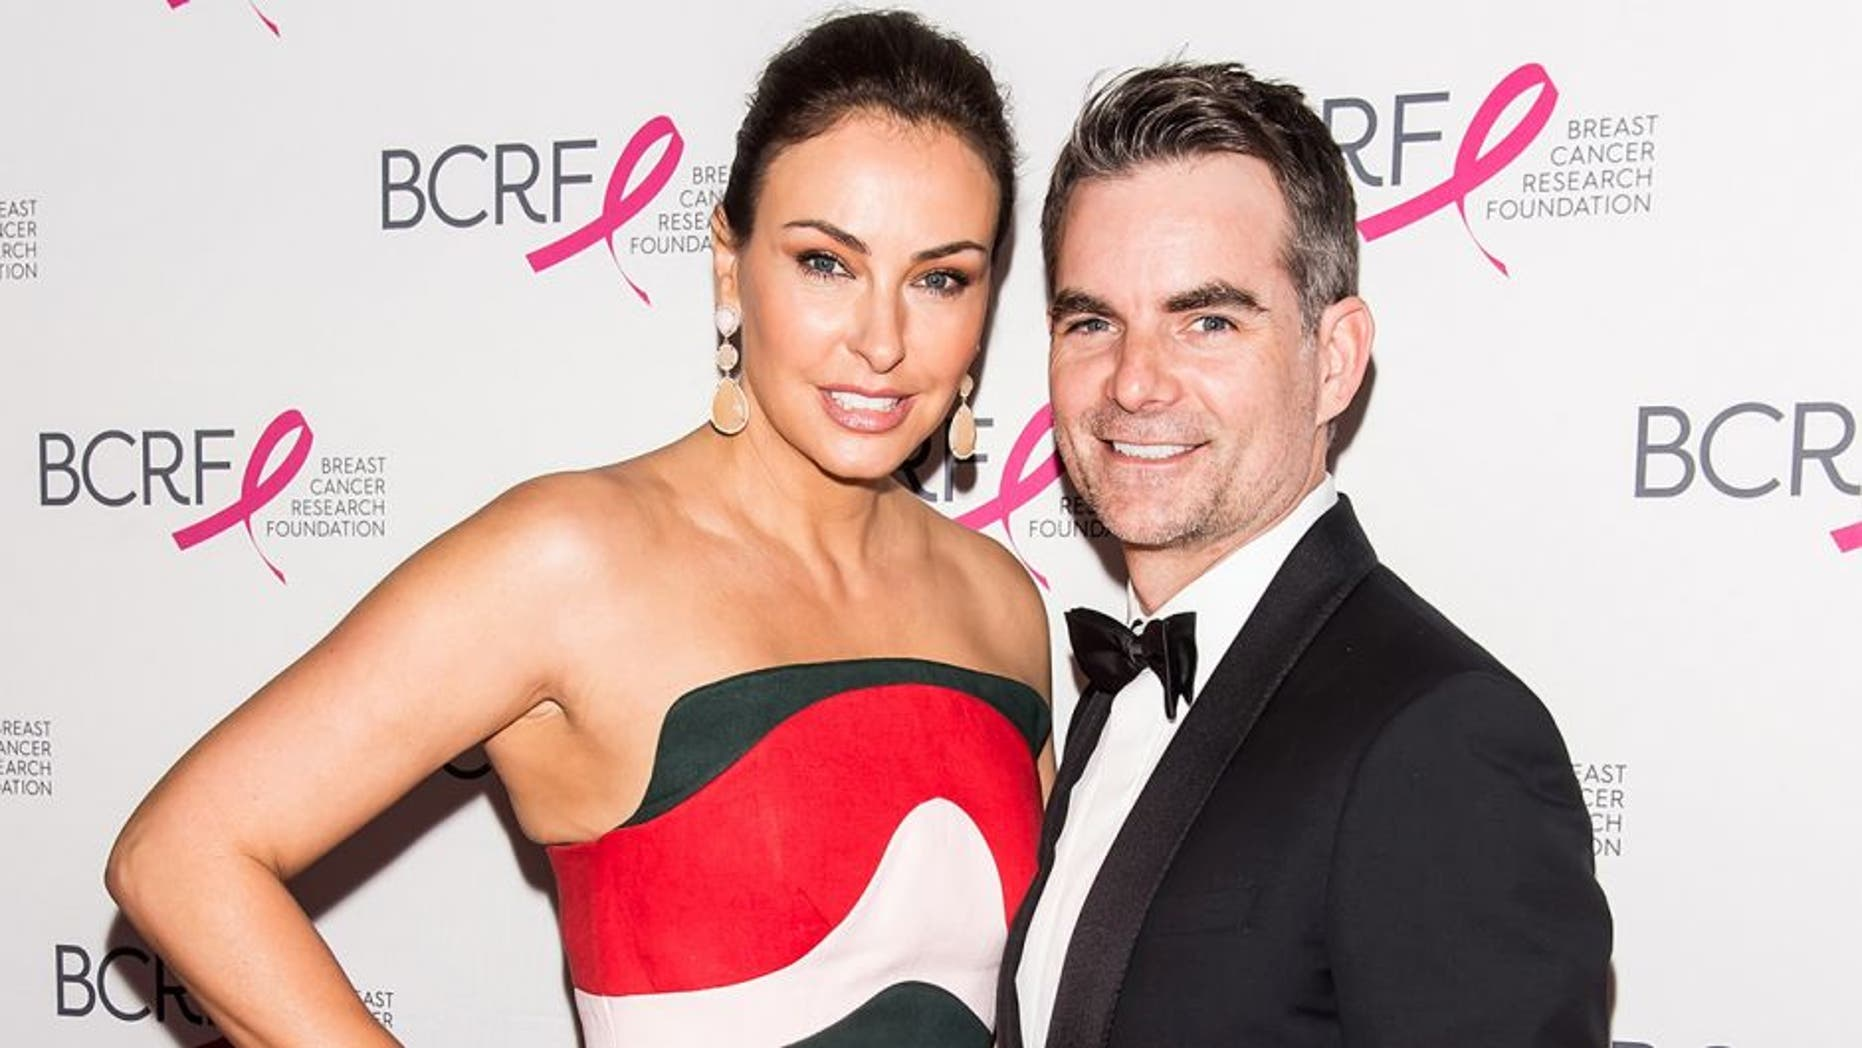 NEW YORK, NEW YORK - APRIL 12: Model Ingrid Vandebosch and Professional Race Car driver Jeff Gordon attend the 2016 Breast Cancer Research Foundation Hot Pink Party at The Waldorf=Astoria on April 12, 2016 in New York City. (Photo by Gilbert Carrasquillo/FilmMagic)